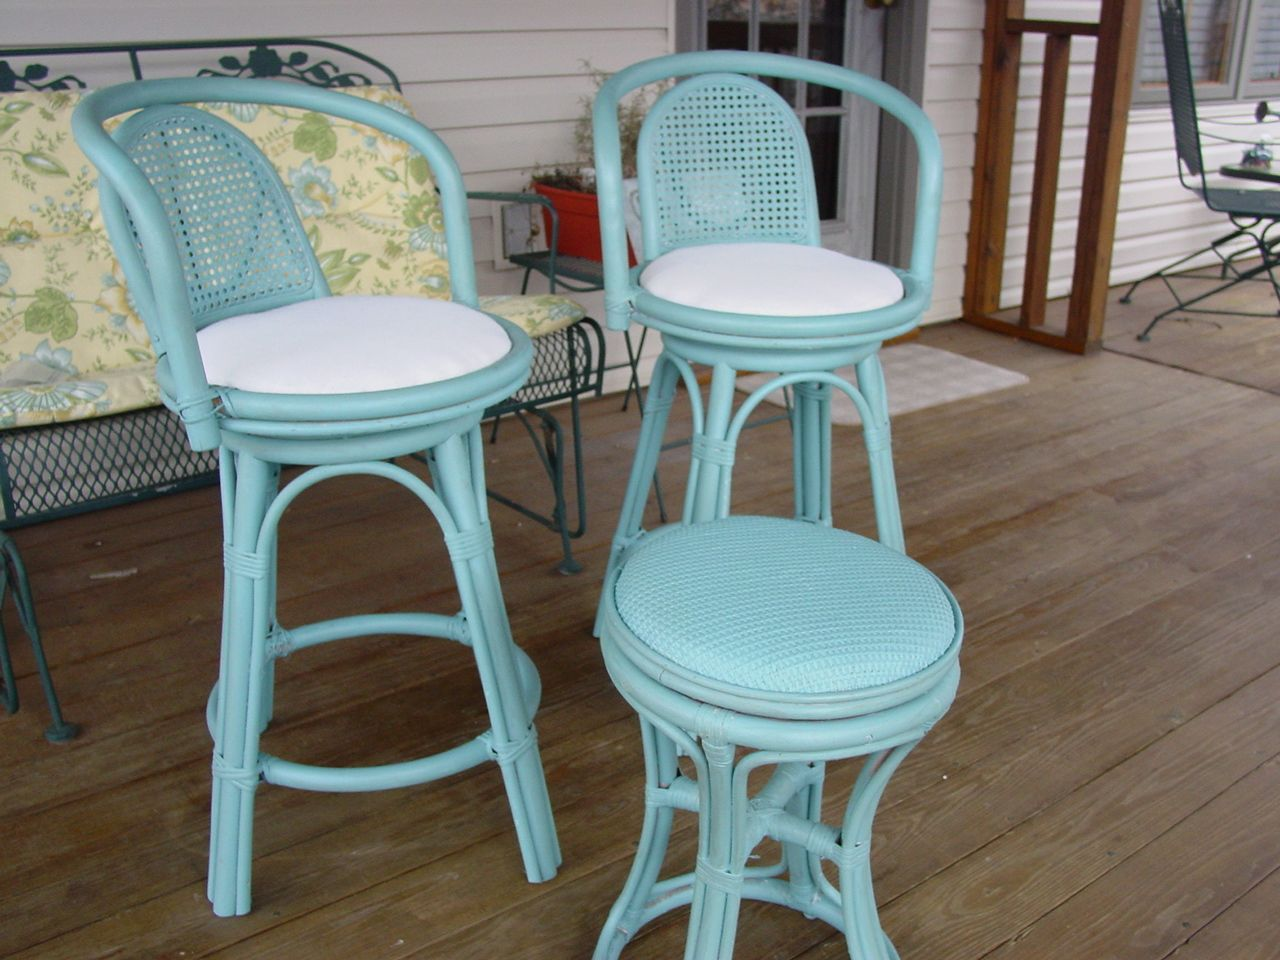 Bar stools updated with chalk paint